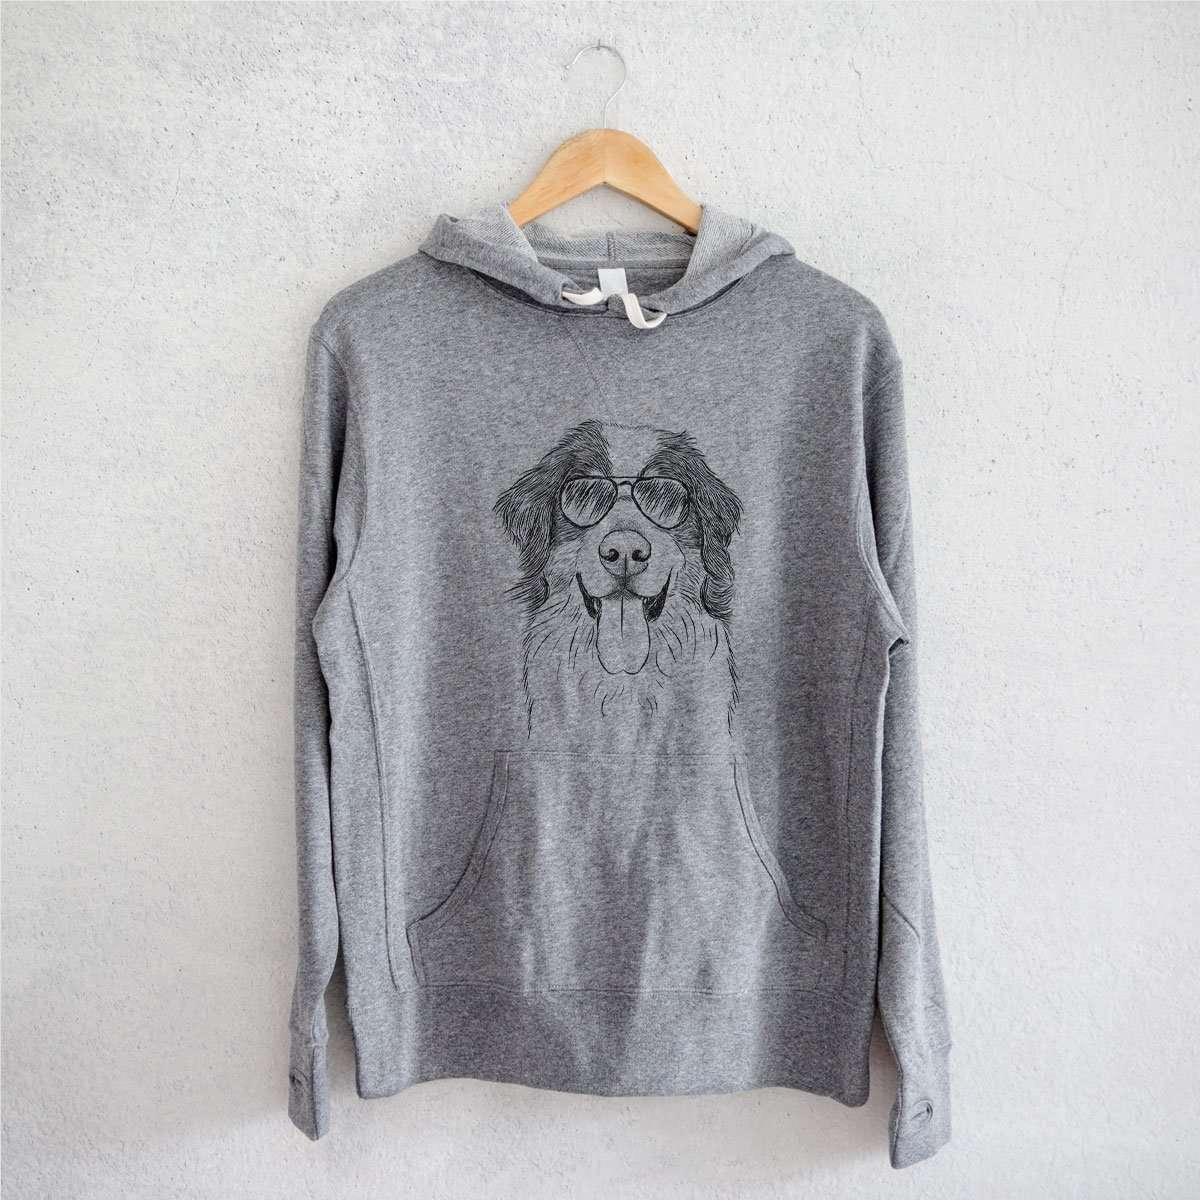 Blaze the Bernese Mountain Dog - Grey French Terry Hooded Sweatshirt